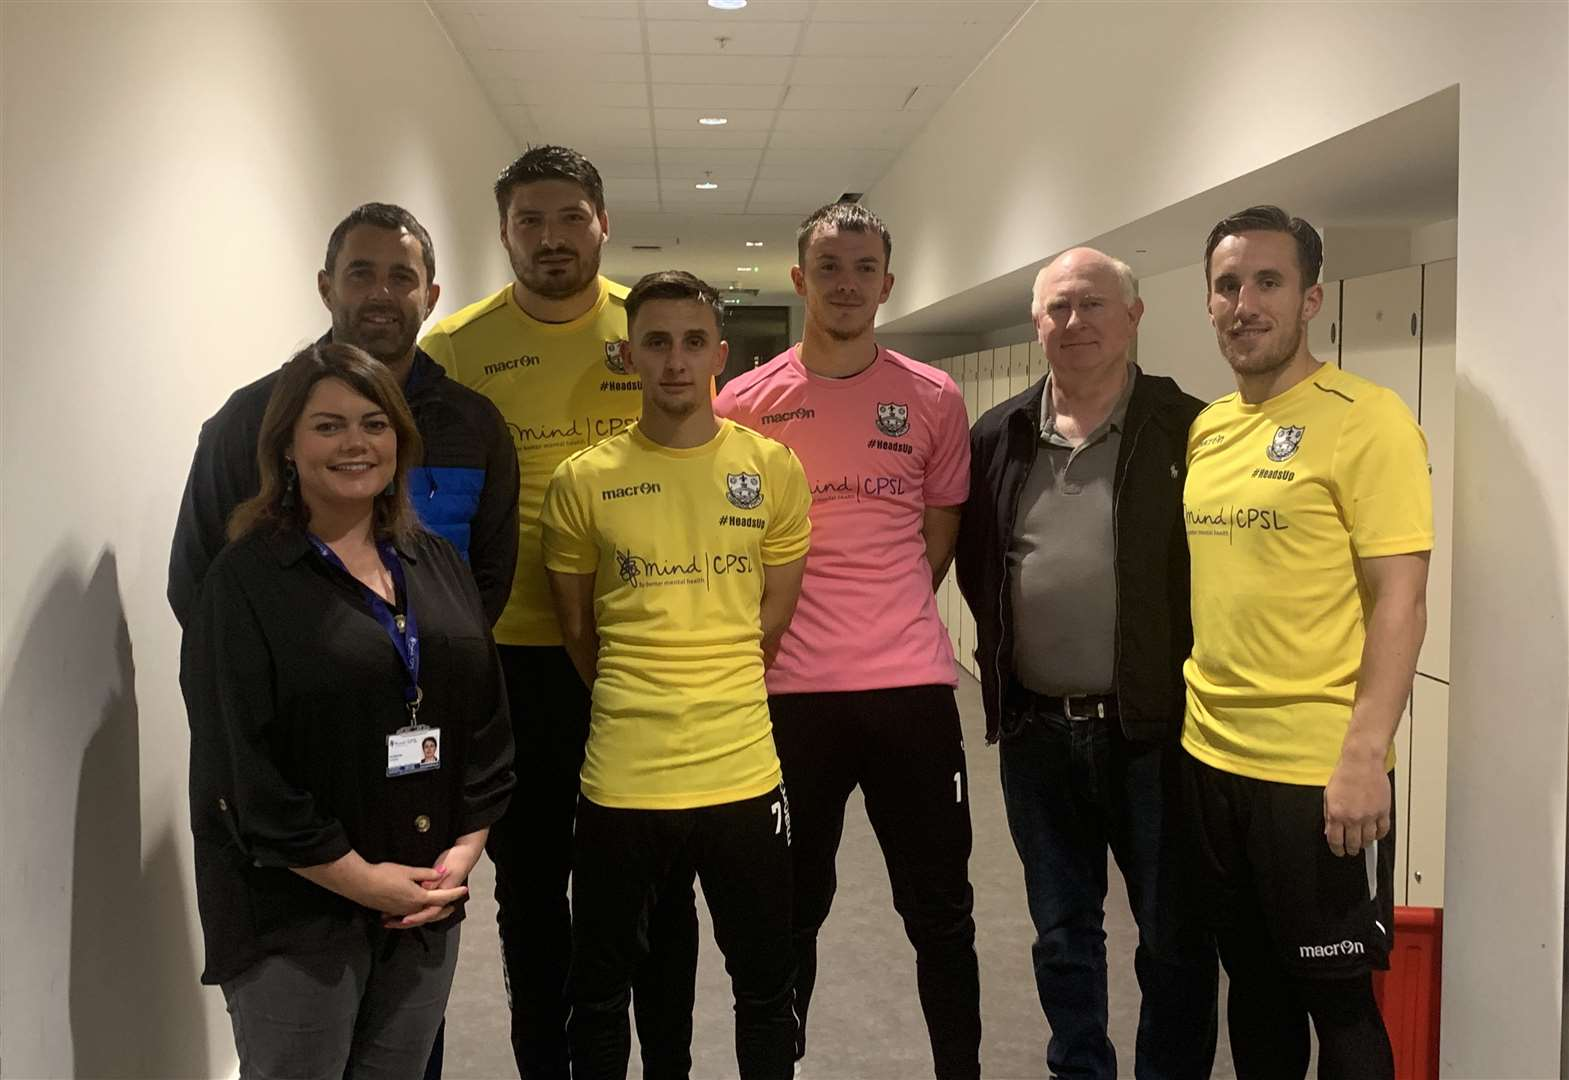 Cambridge City going yellow for charity CPSL Mind in FA Trophy home clash with Market Drayton